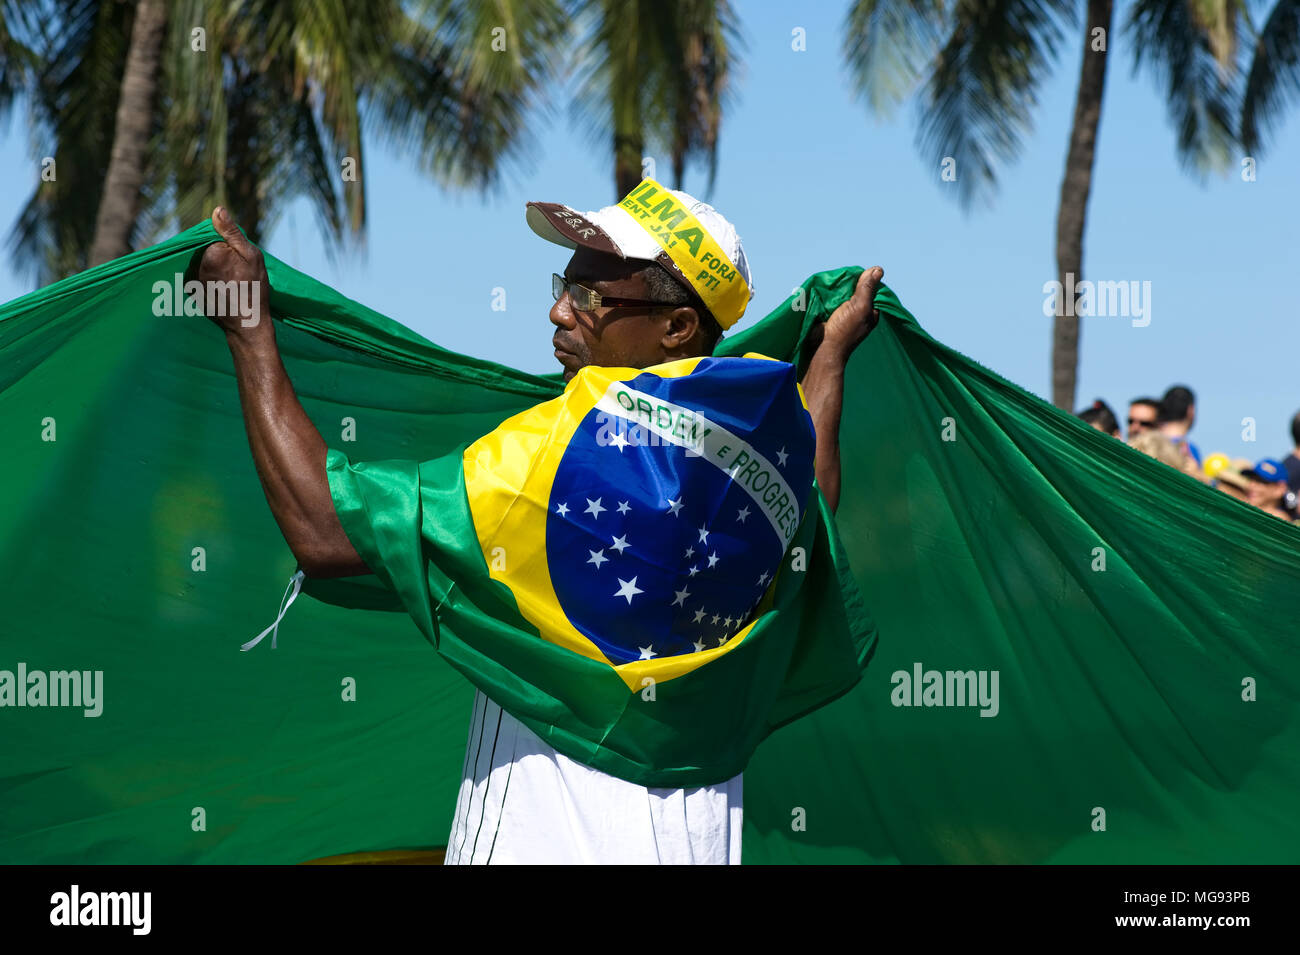 Rio de Janeiro - July 31, 2016: Peaceful demonstration against corruption in Brazil took over Copacabana beach - Stock Image